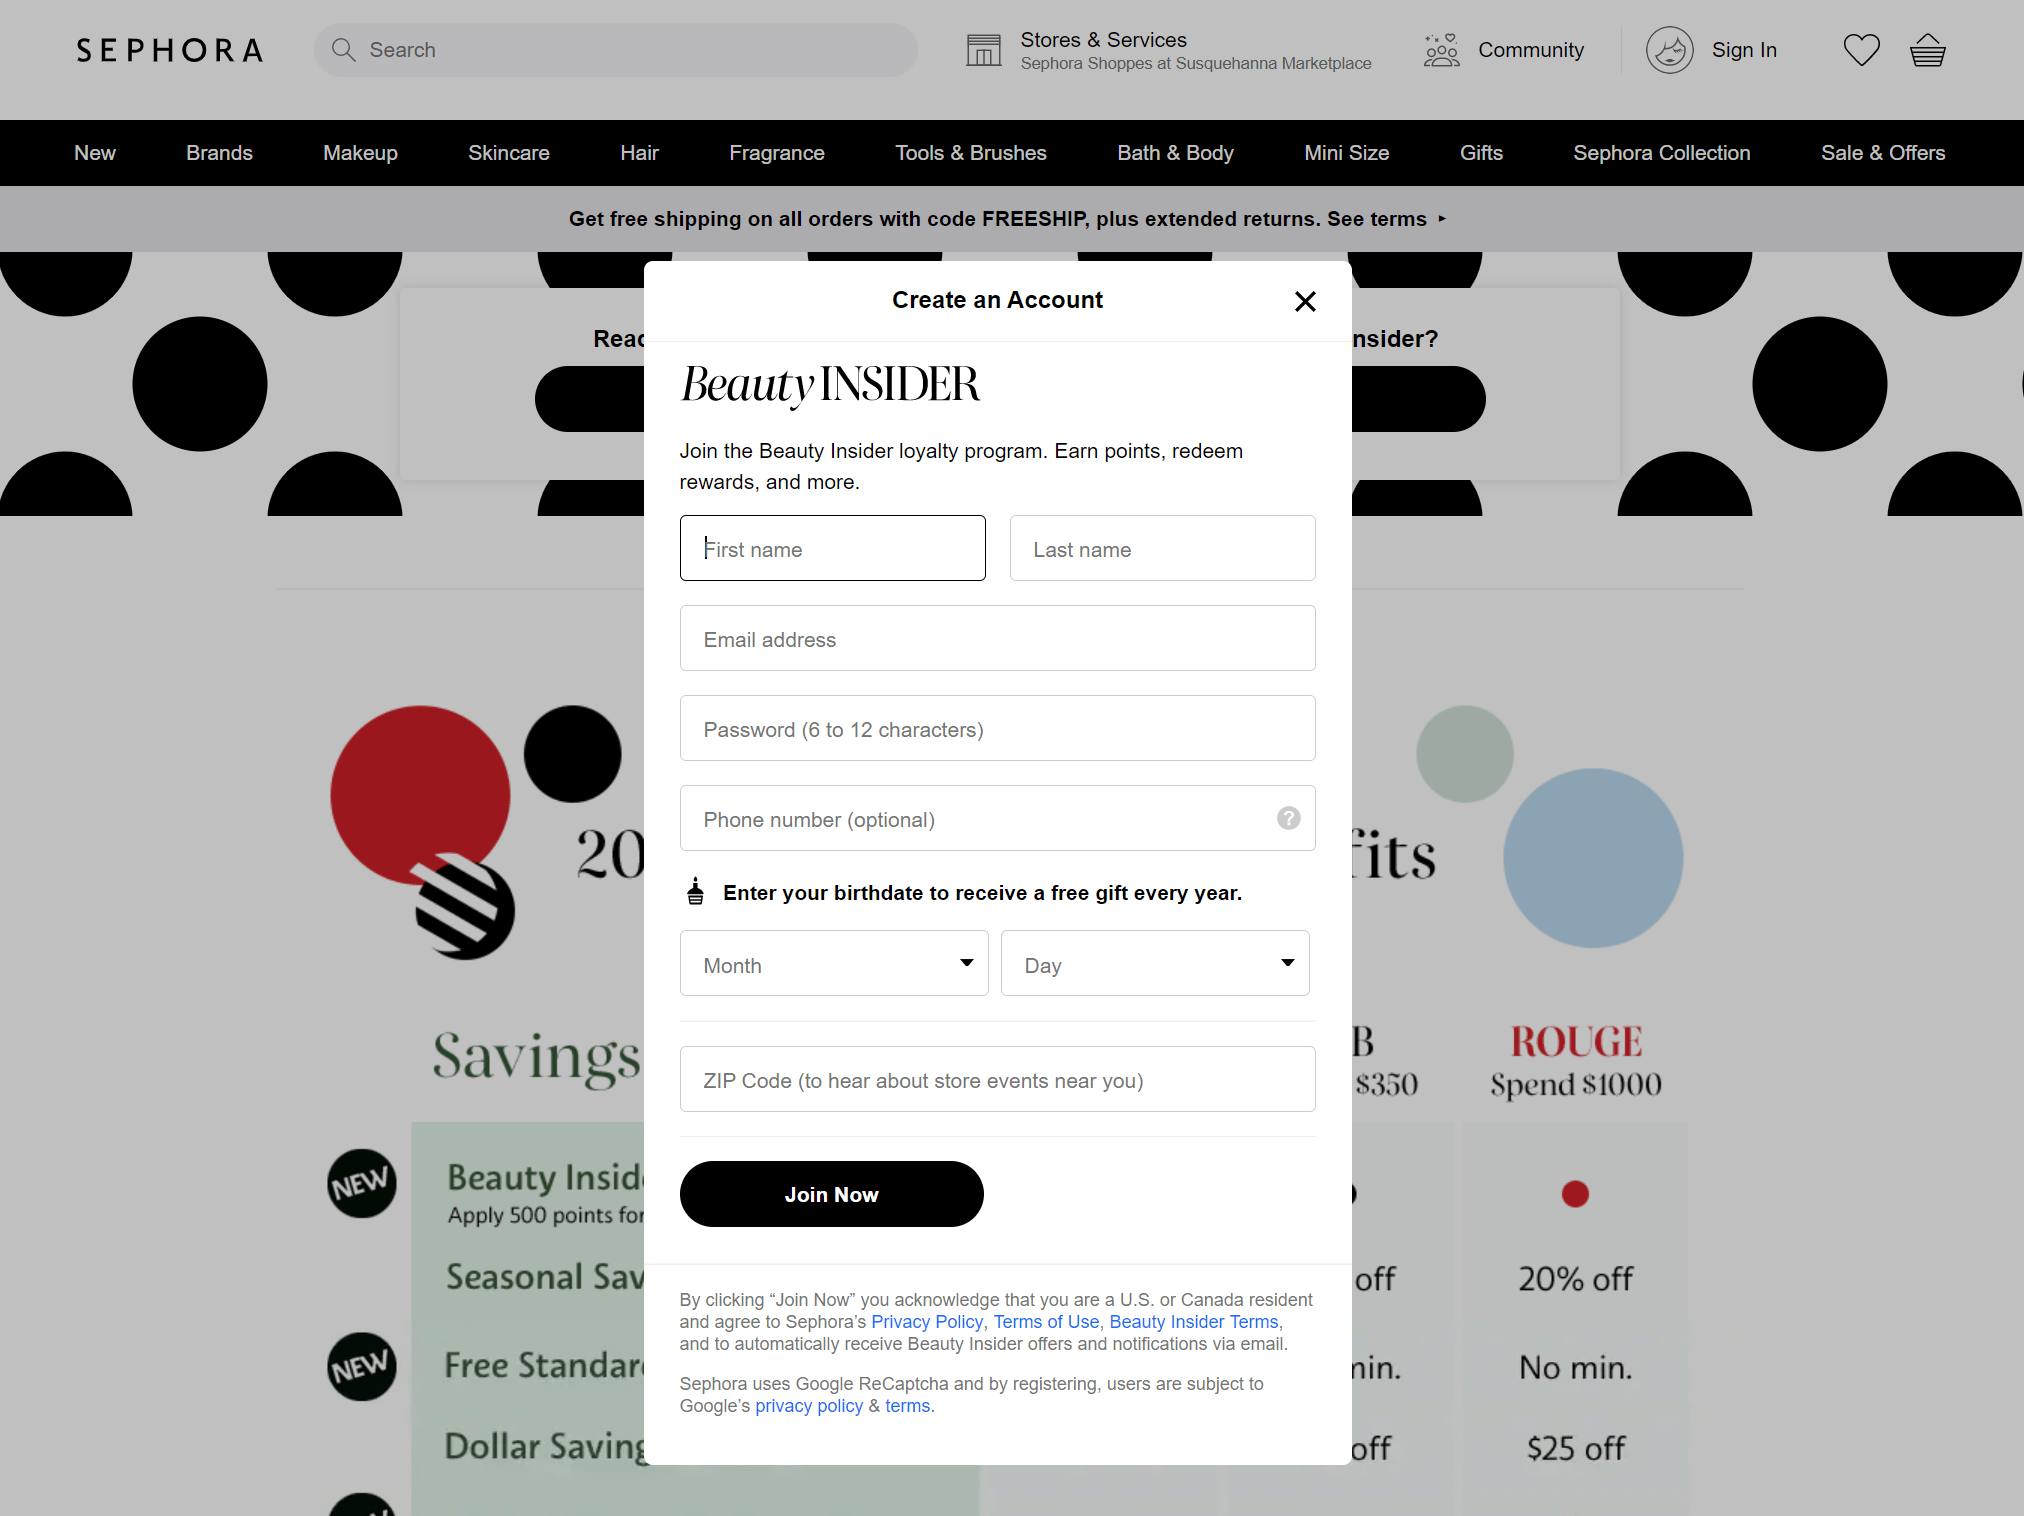 A sign-up page for the Sephora rewards program